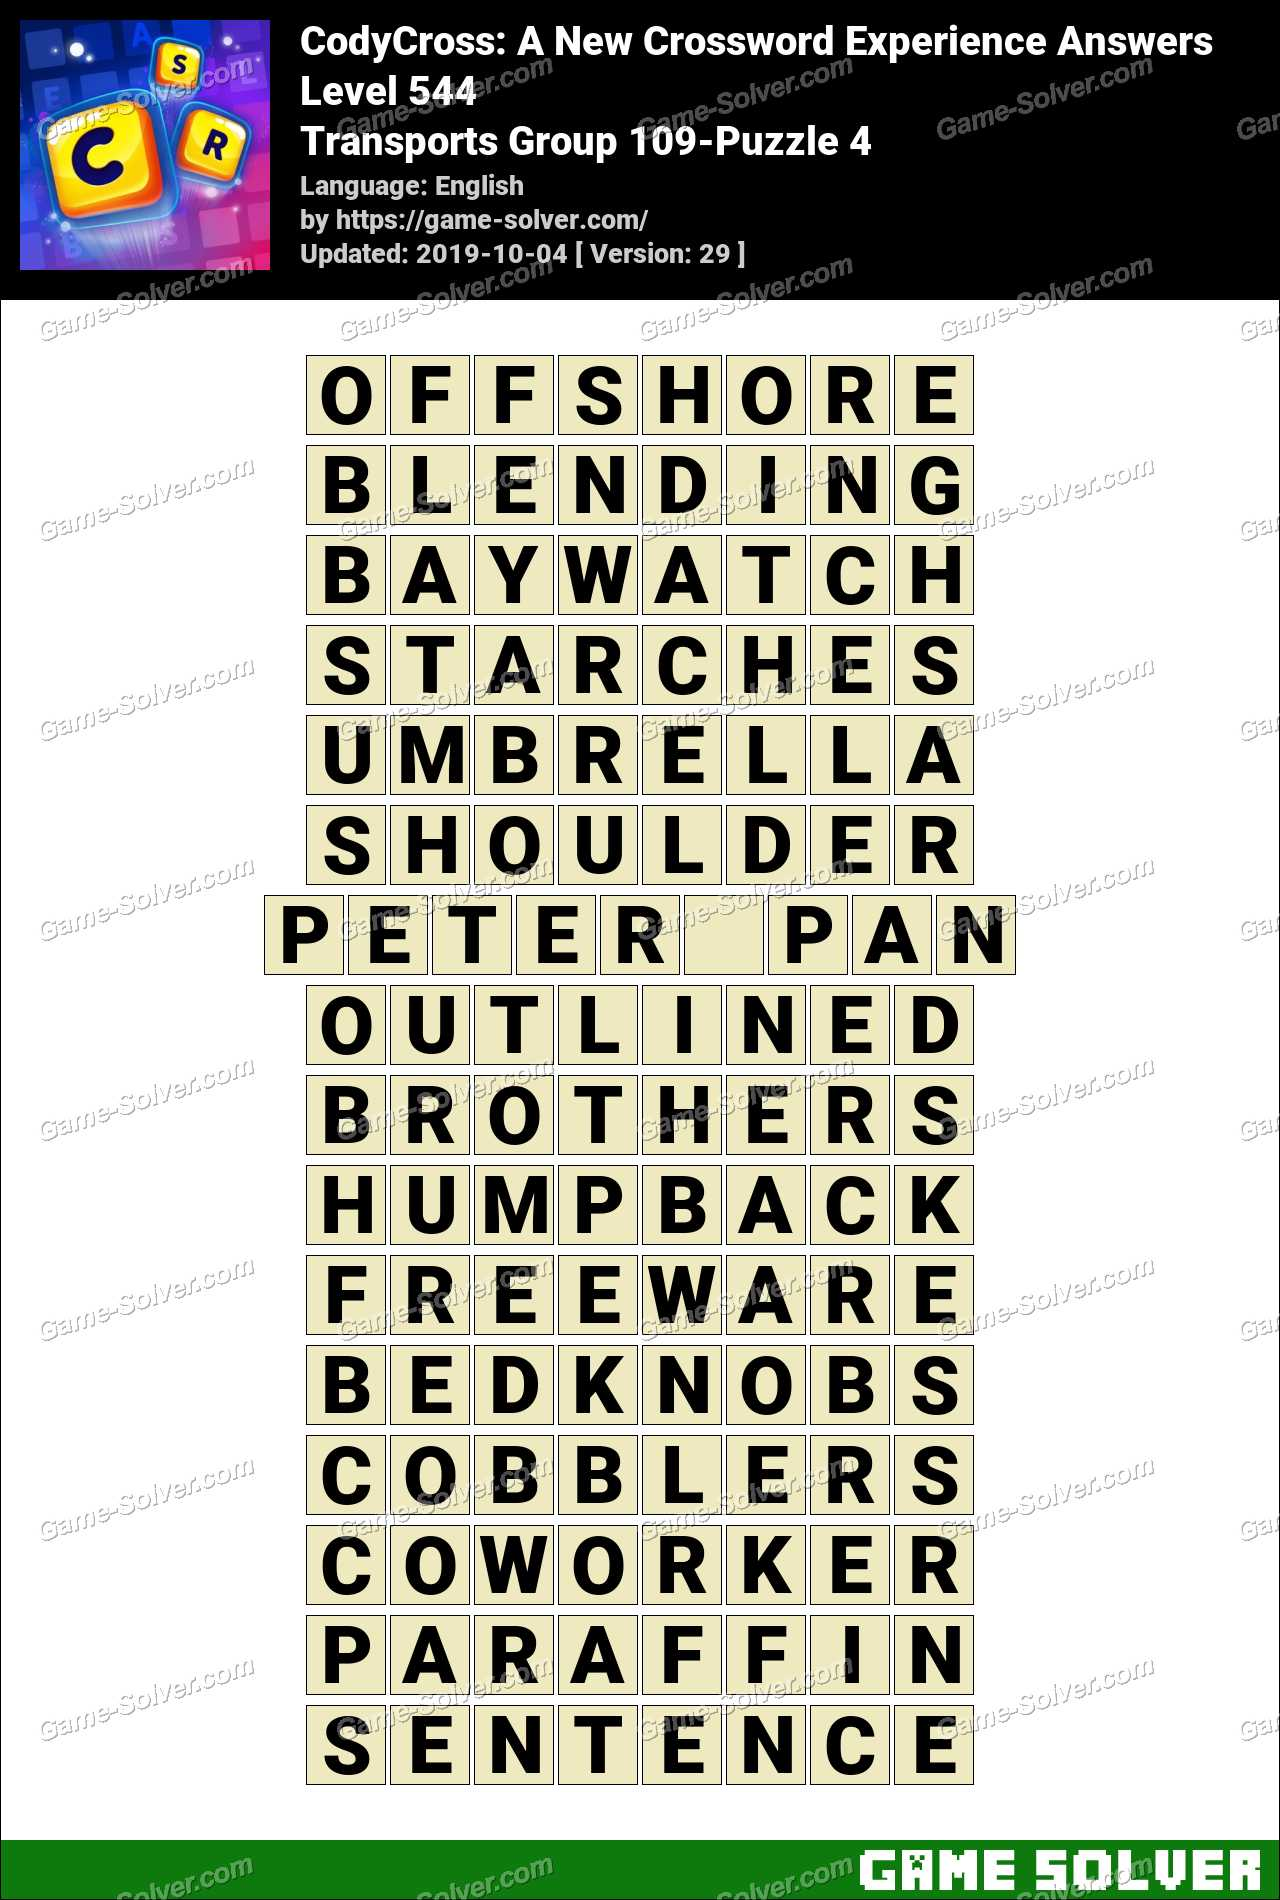 CodyCross Transports Group 109-Puzzle 4 Answers